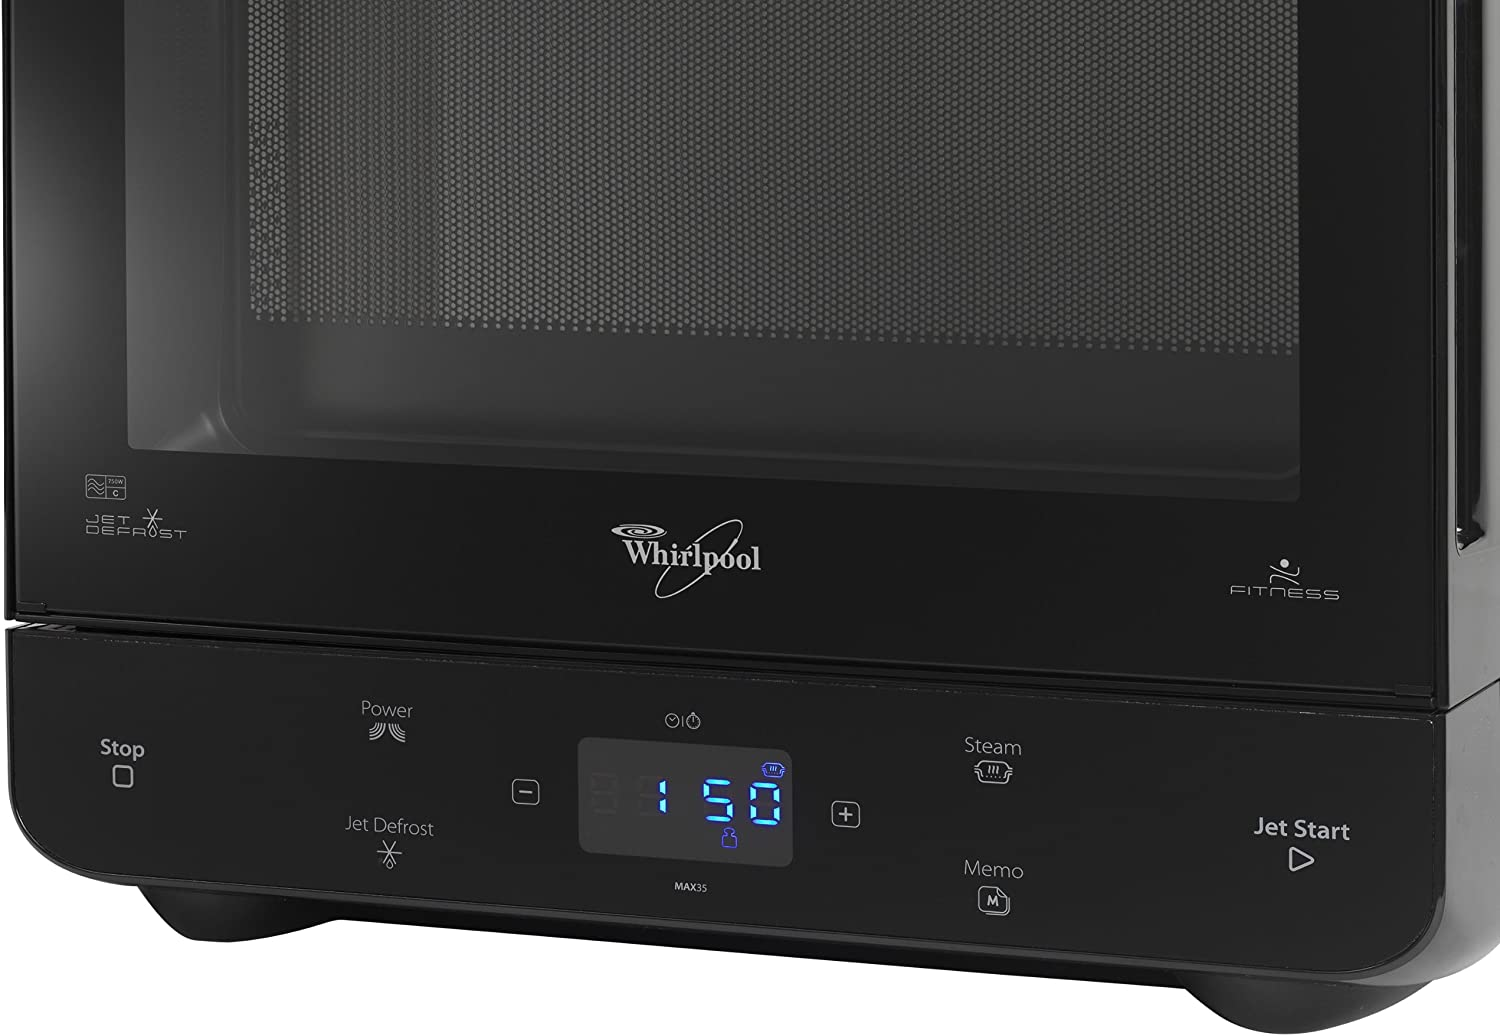 black-whirlpool-max-microwave-with-steam-function